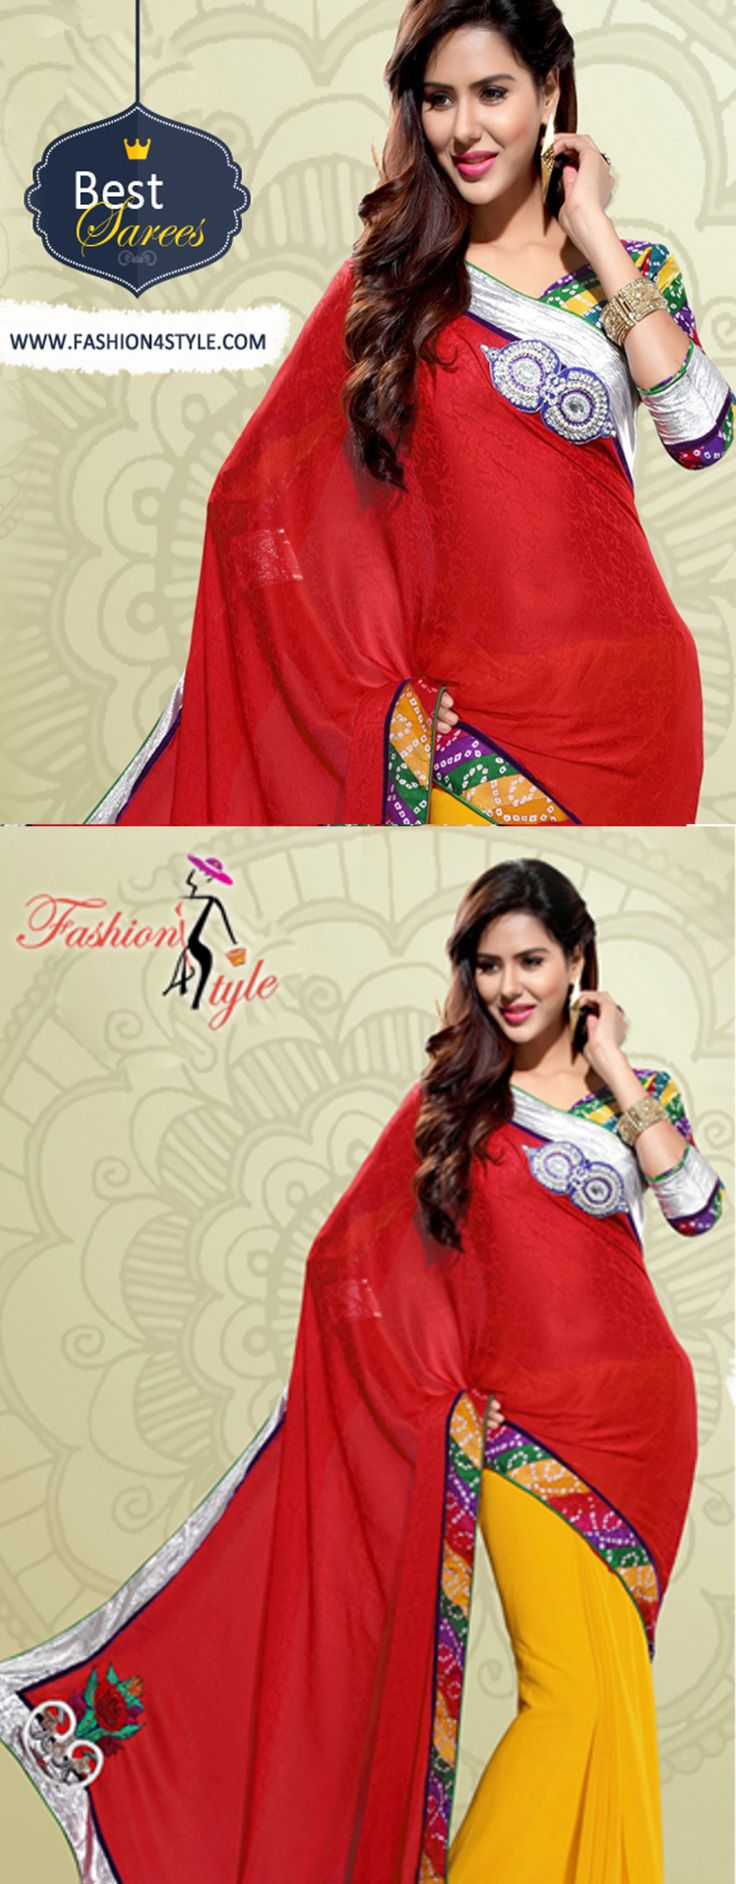 www.fashion4style.com/woman/clothing/designer-sarees